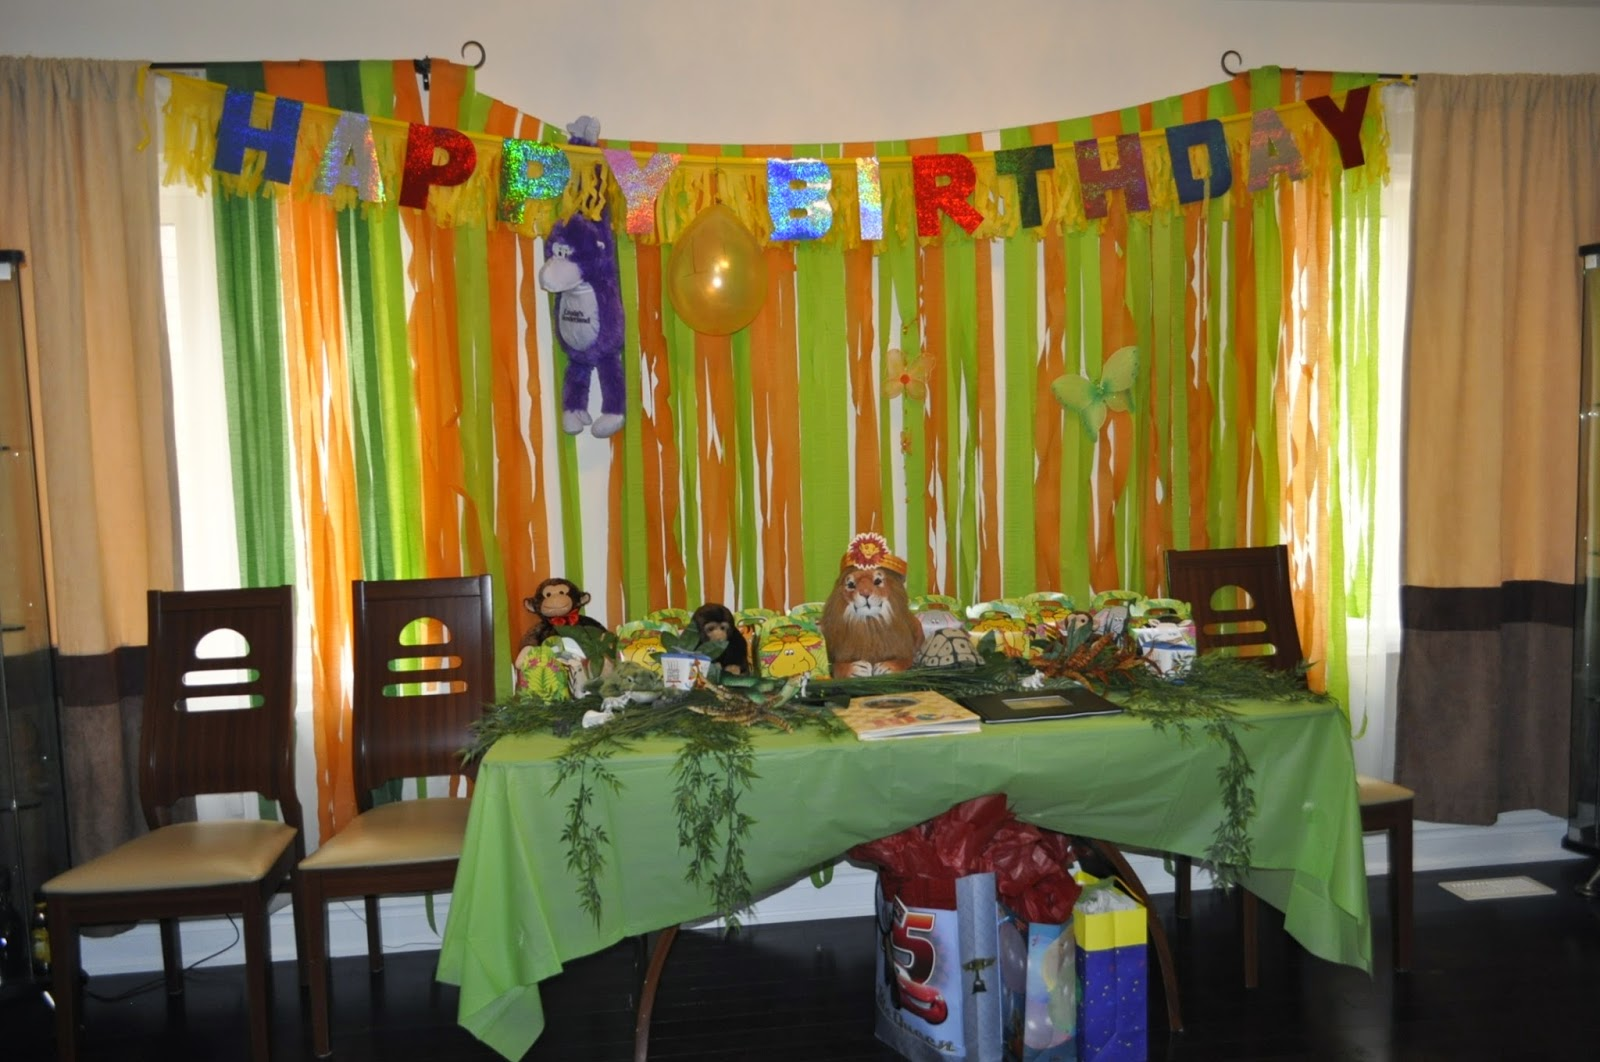 The most amazing diy lion king birthday party busy mama take a walk on the wild side to celebrate your childs name 1st birthday with lots of fun entertainment for both kids and adults filmwisefo